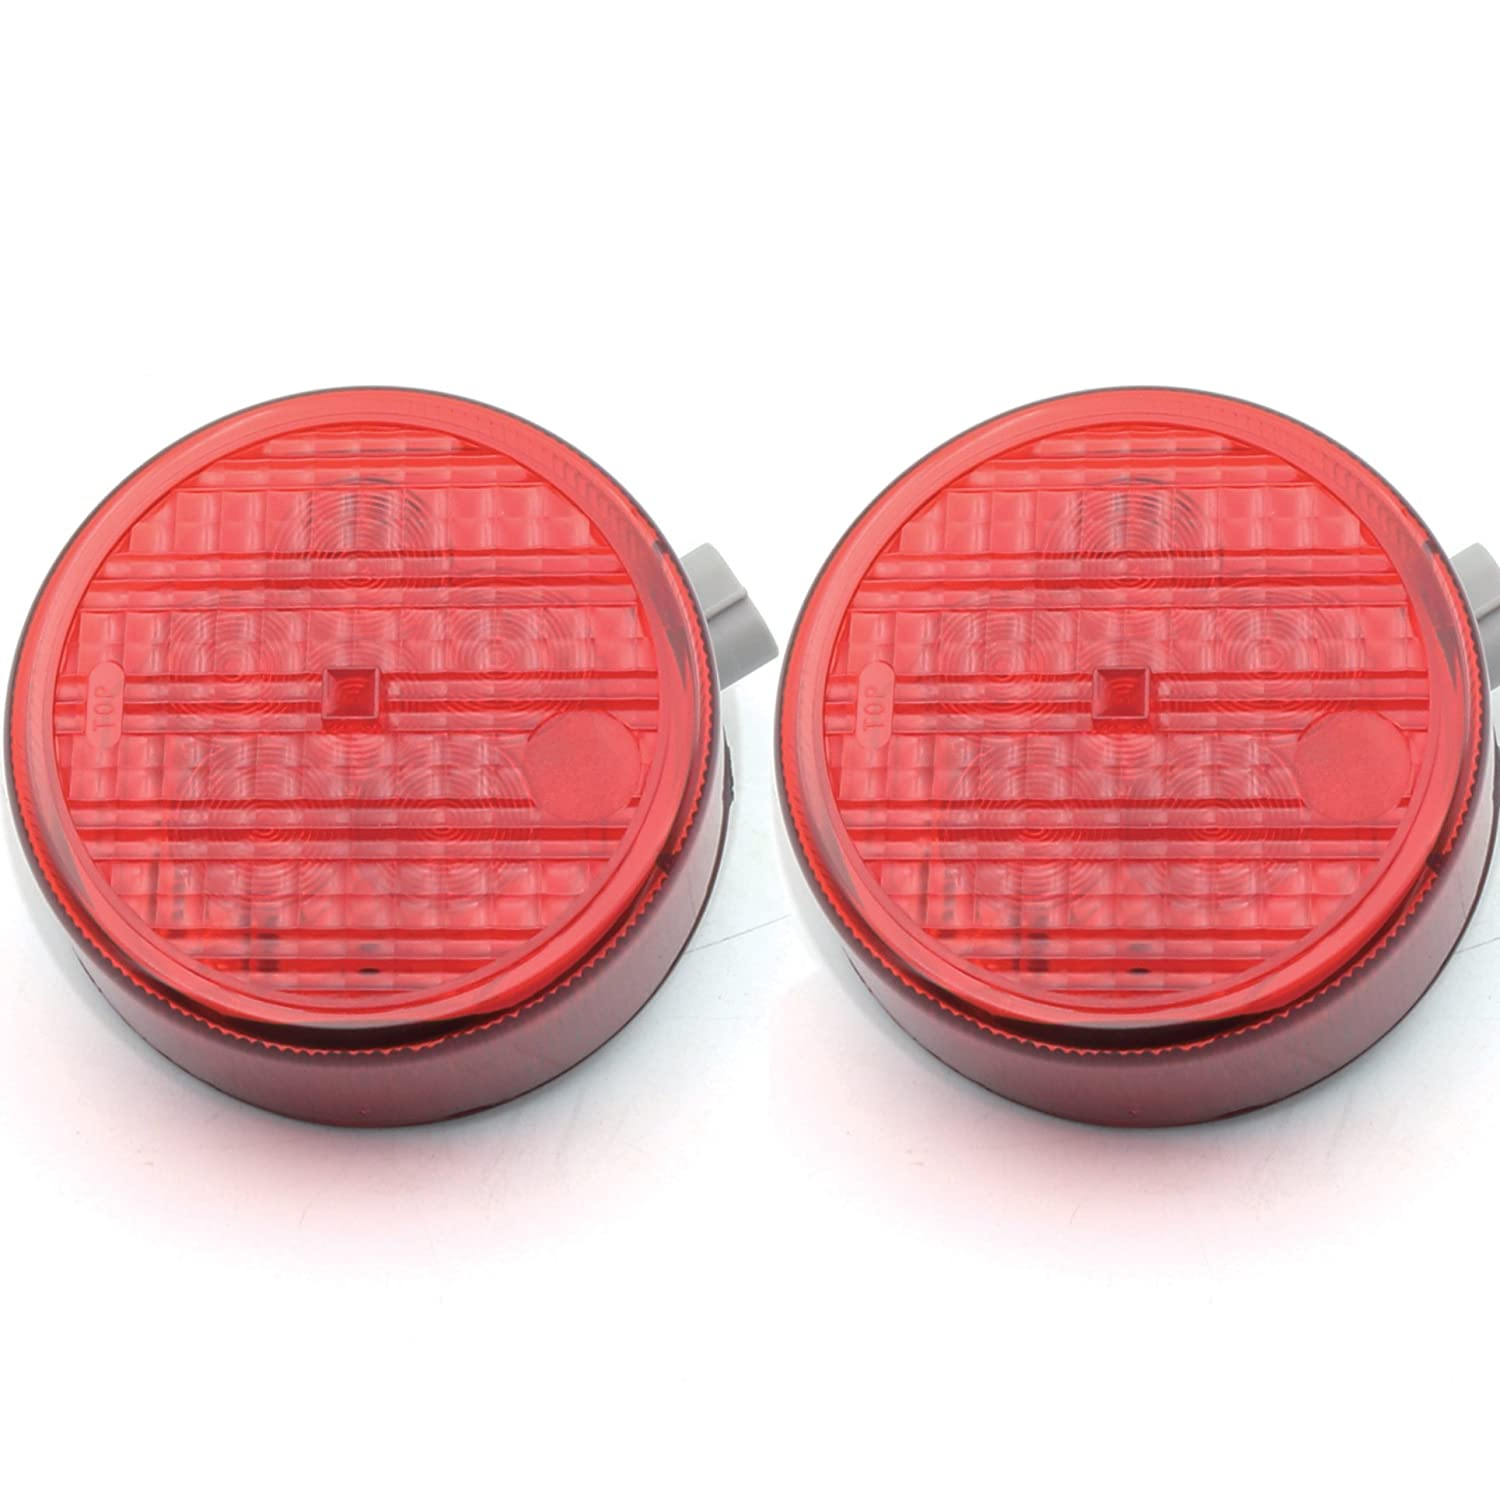 Pair LED Tail Light Rear Lamp Replacement For Kawasaki Teryx Teryx4 2012-2016 red